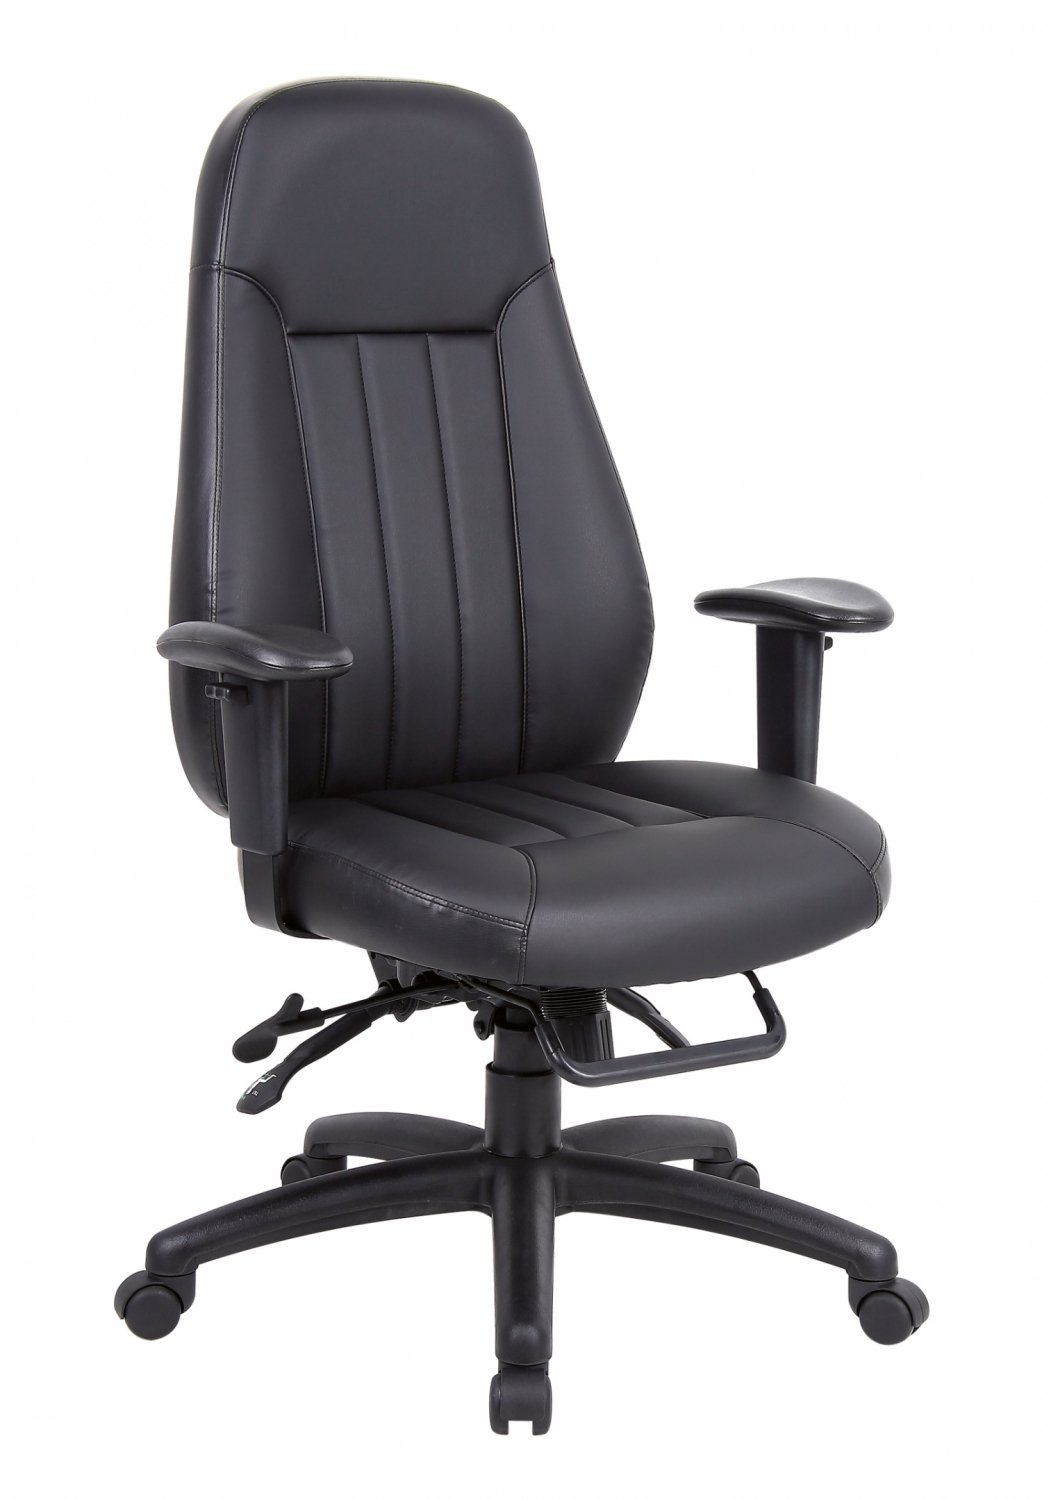 Dual-purpose leather office chair for both style-conscious executives and challenging 24 hour environments.